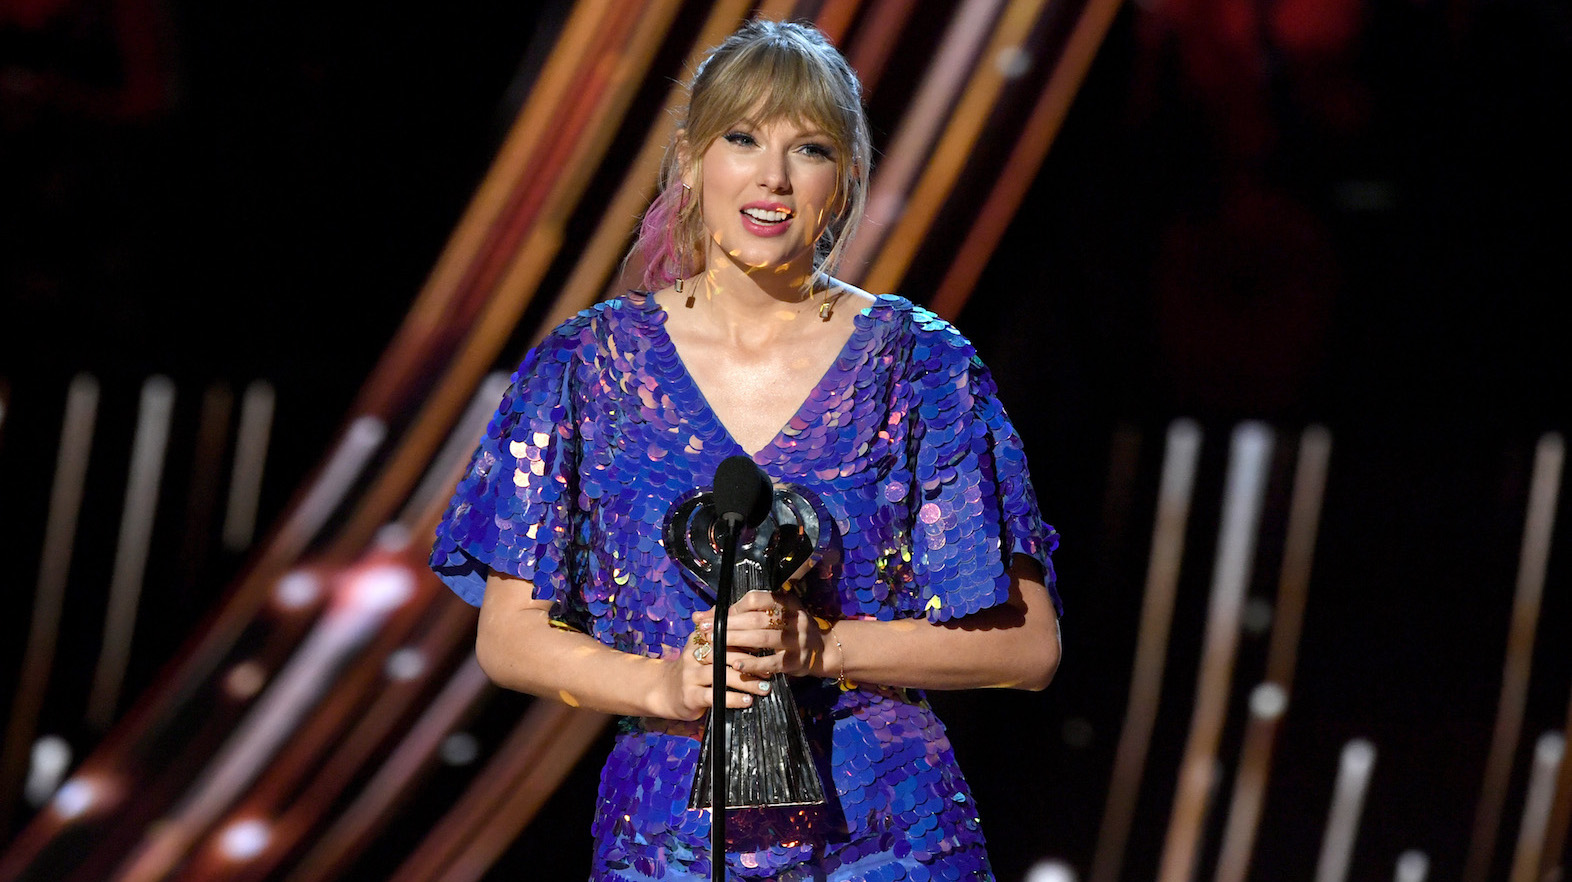 Taylor Swift Slams Haters for Not Believing in Her During iHeartRadio Awards Speech